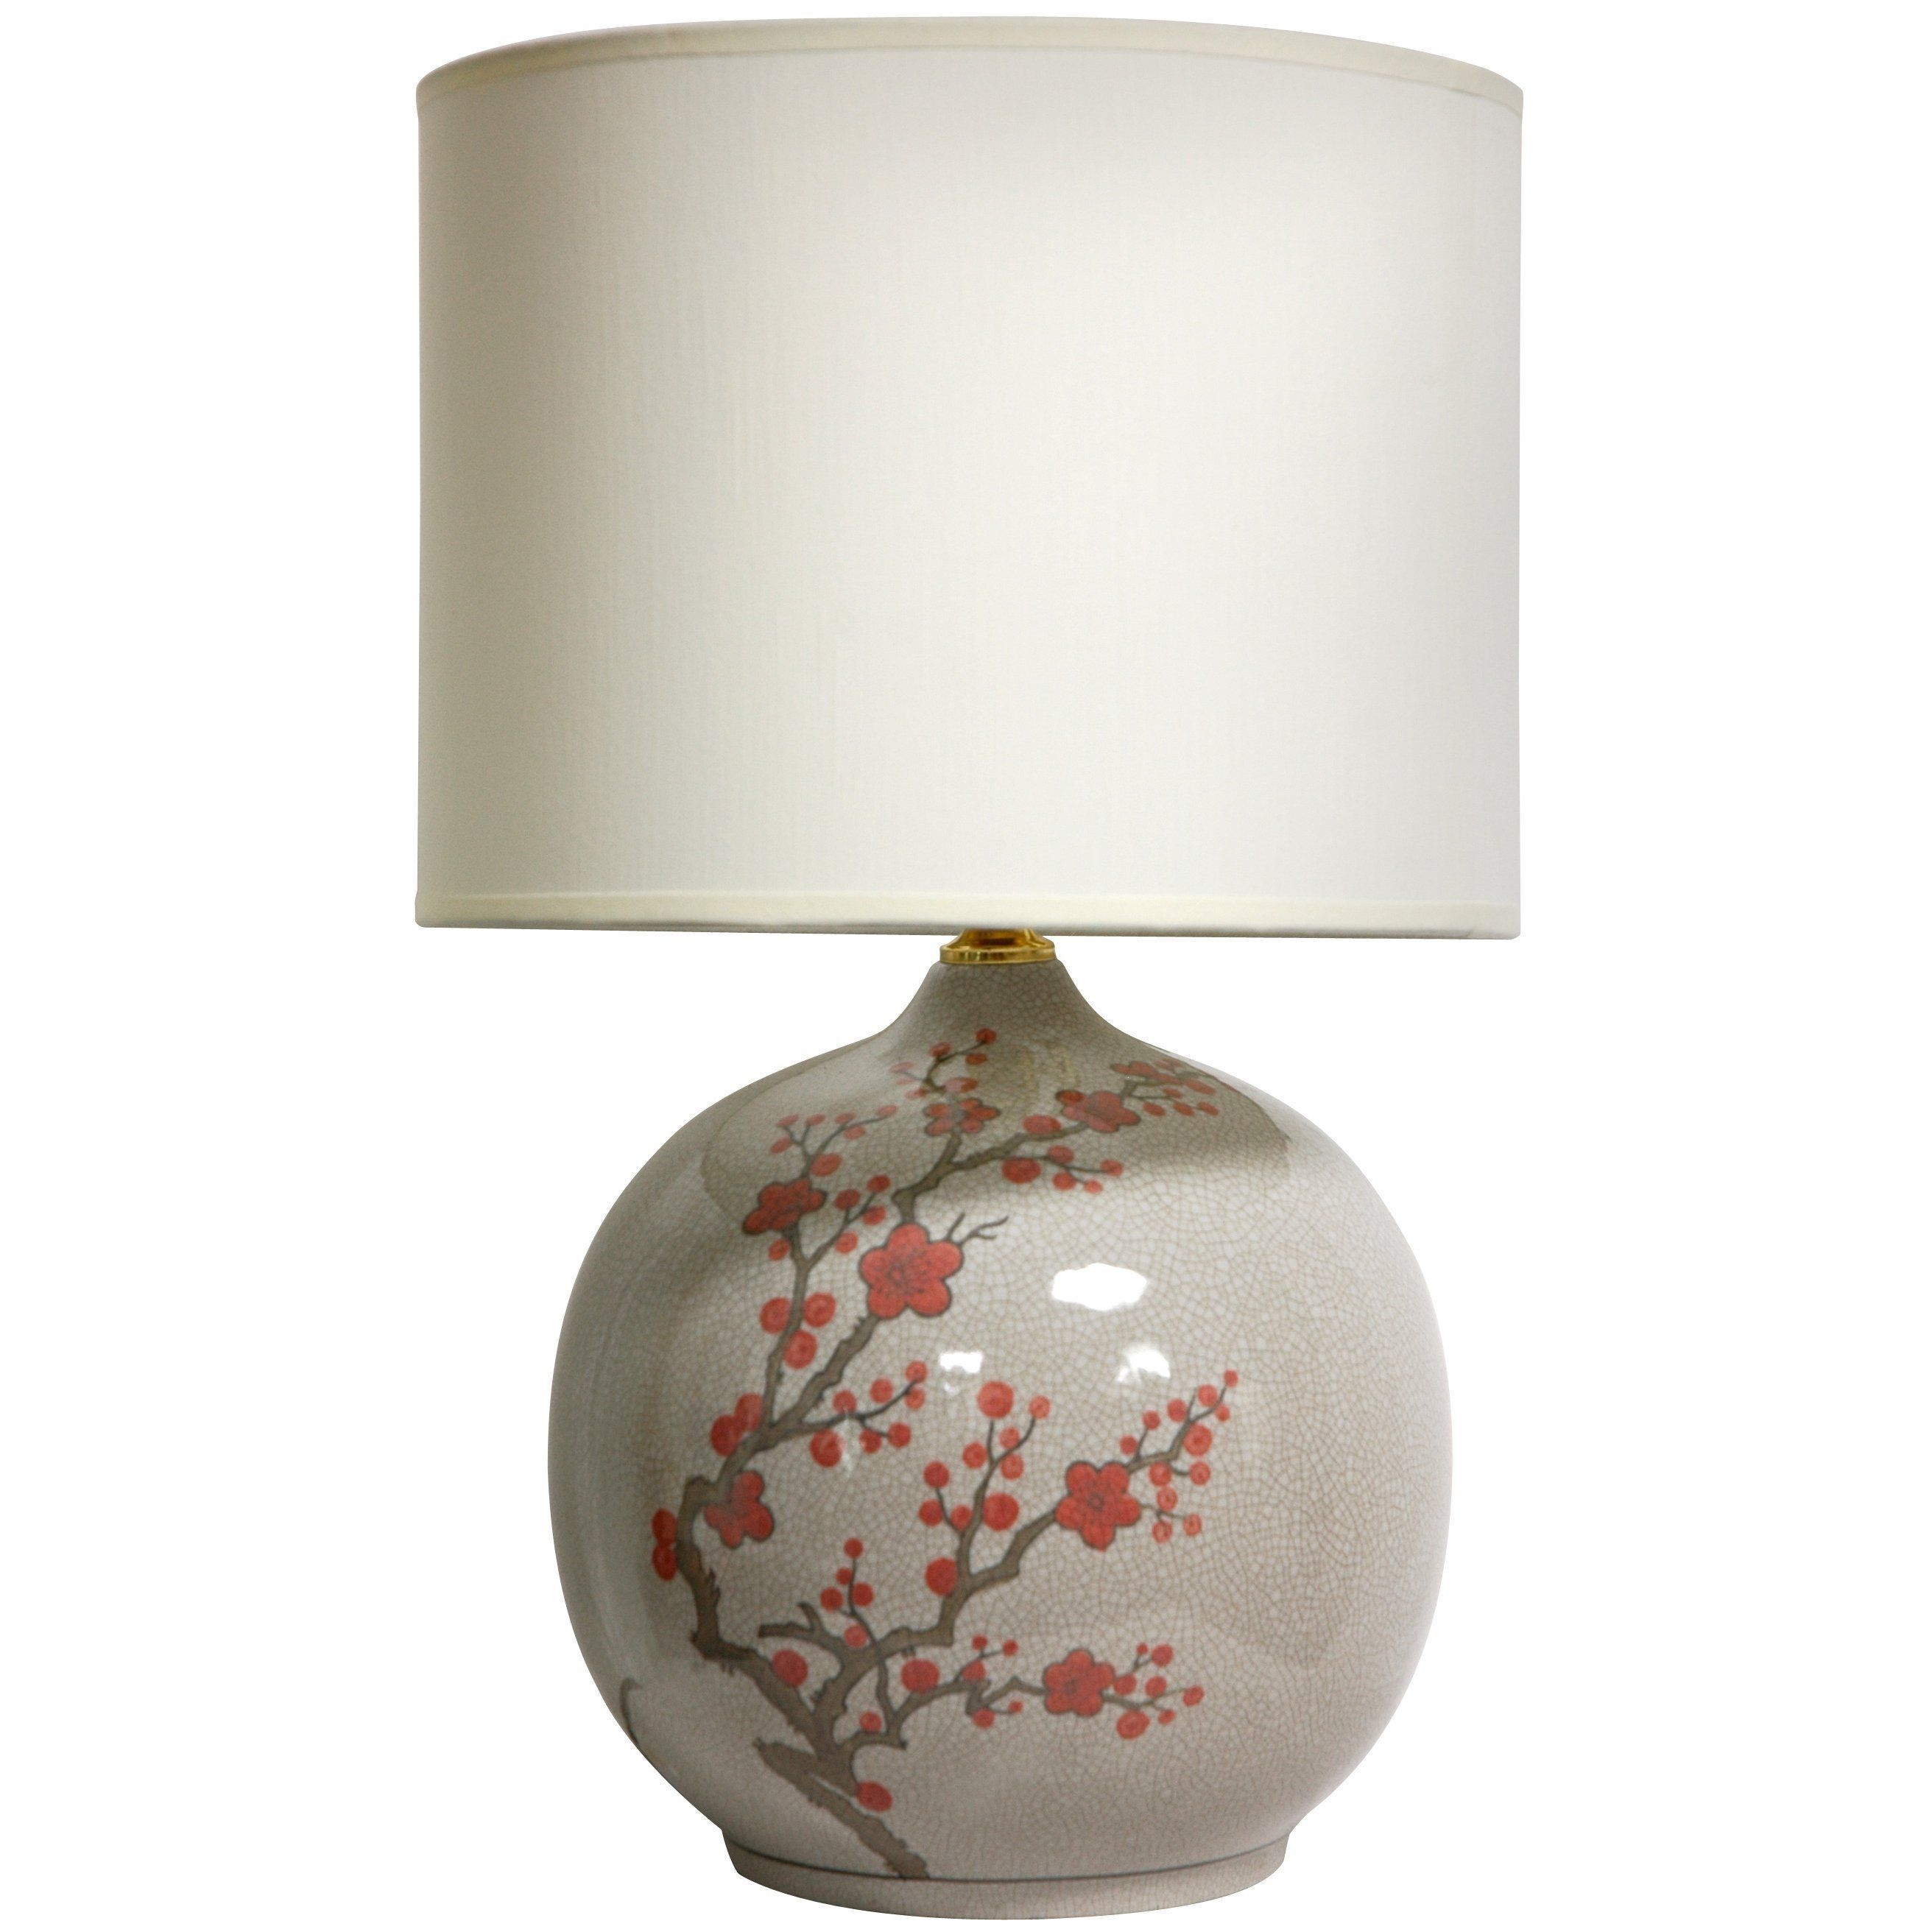 <li>Add a touch of China to your home with this stylish vase lamp  <li>Elegantly handcrafted by artisans in China's Guangdong province <li>Truly unique table lamp will complement any decor